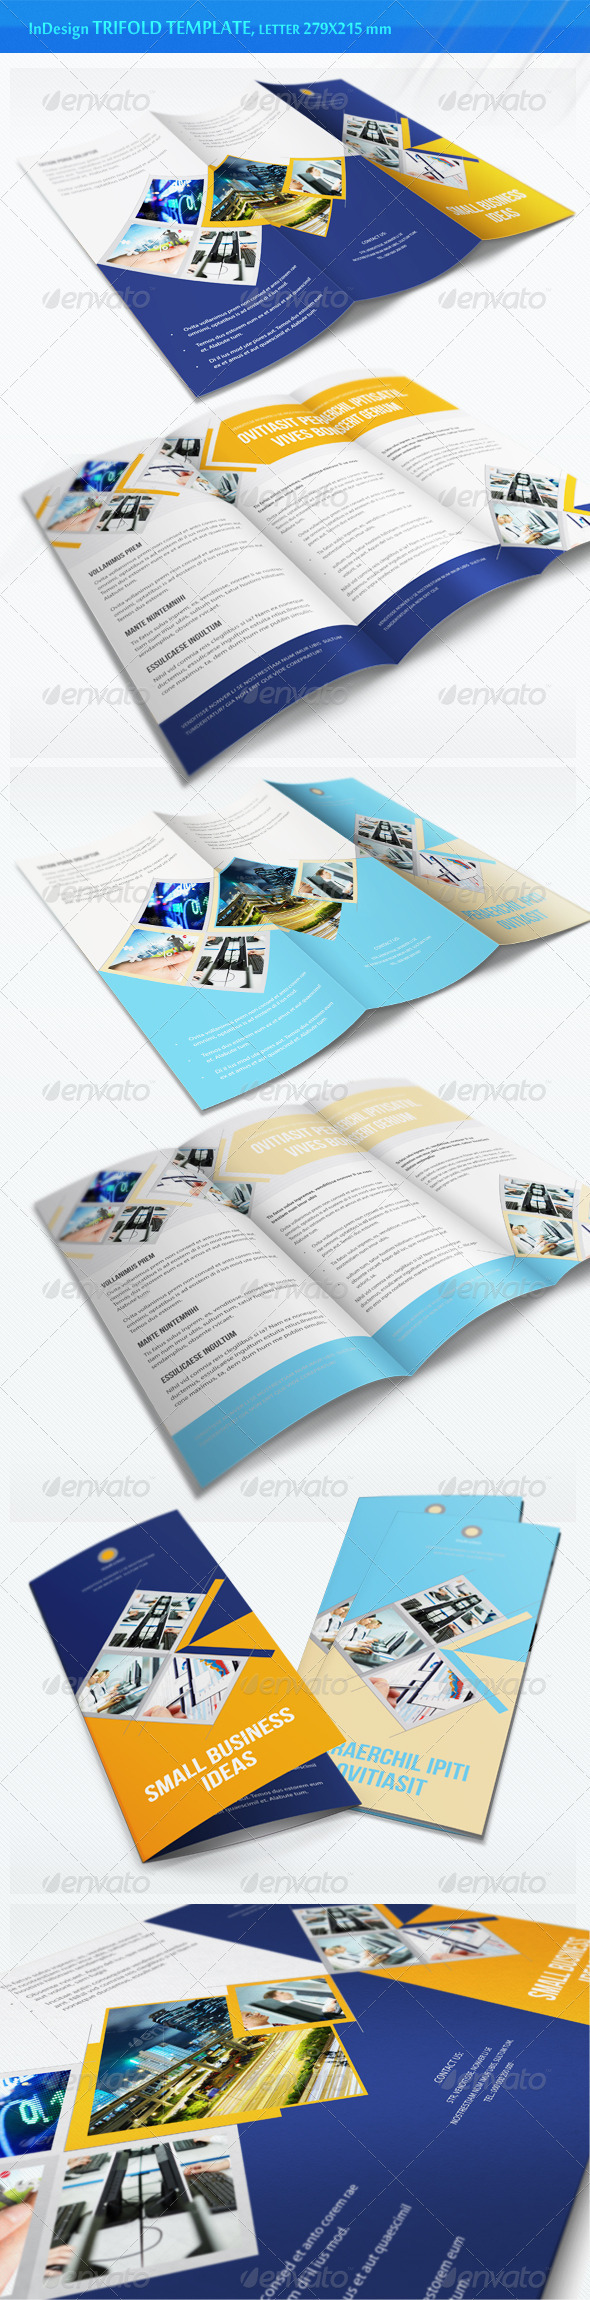 Business Trifold Brochure - v5 - Corporate Brochures